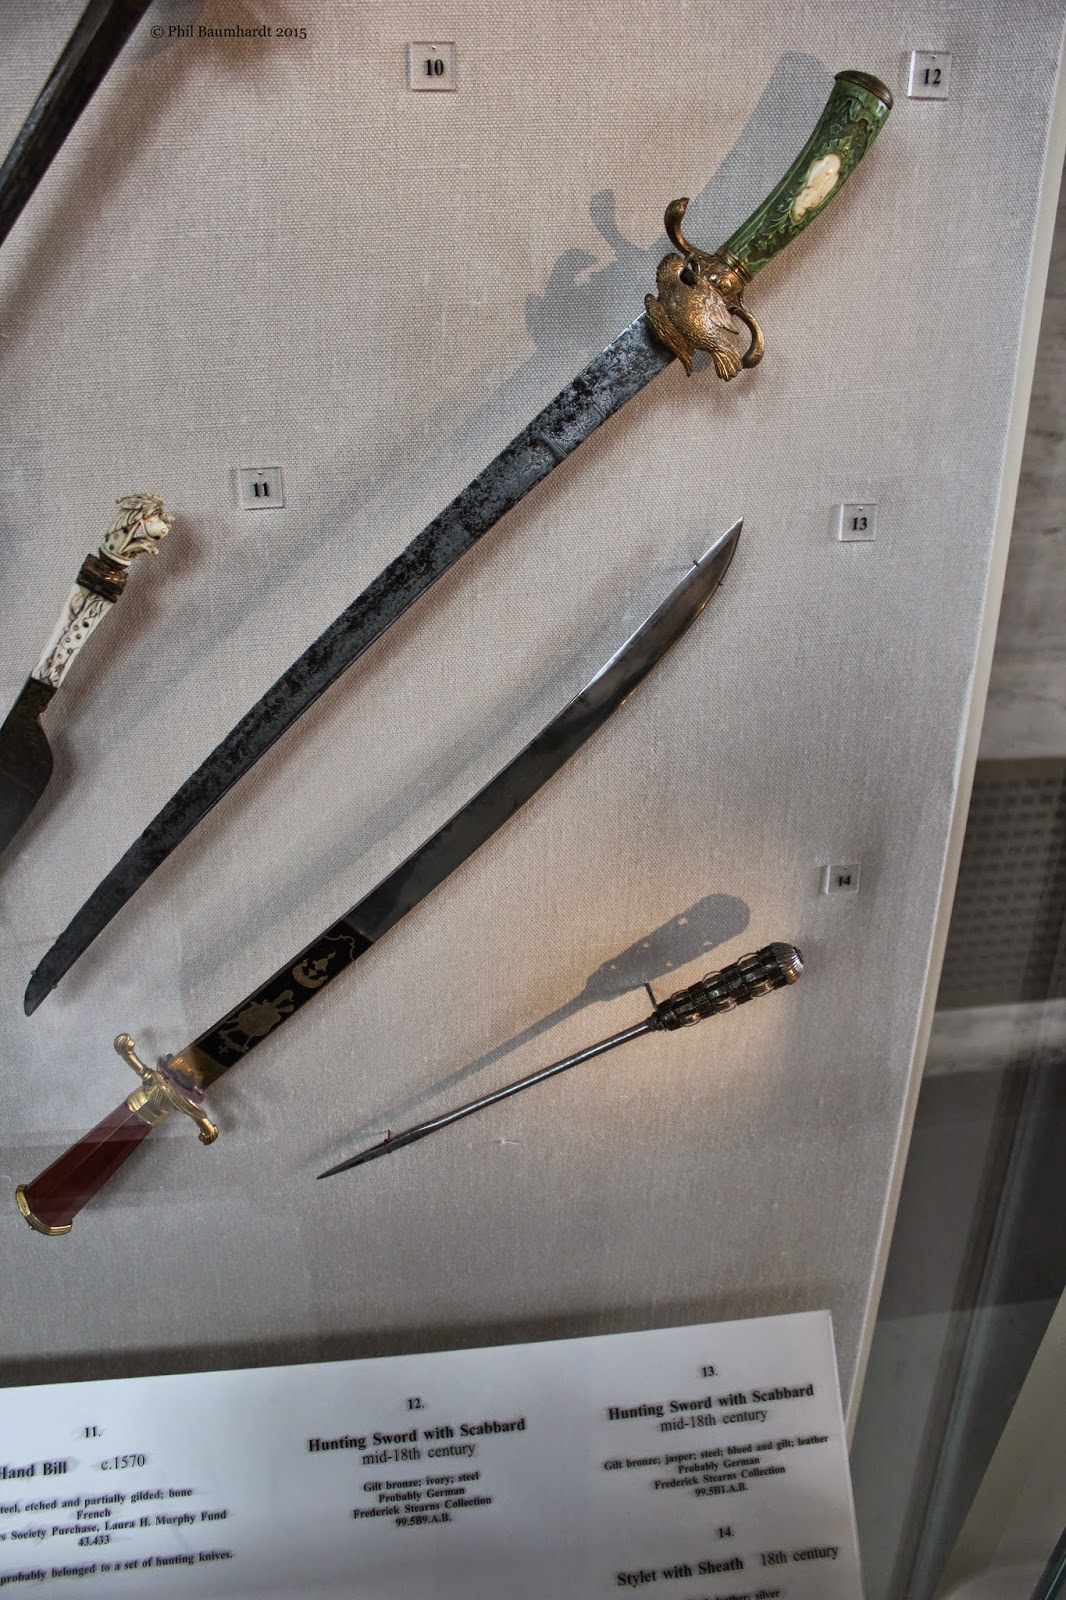 Blackheart Forge: German Hunting Swords from the 18th century